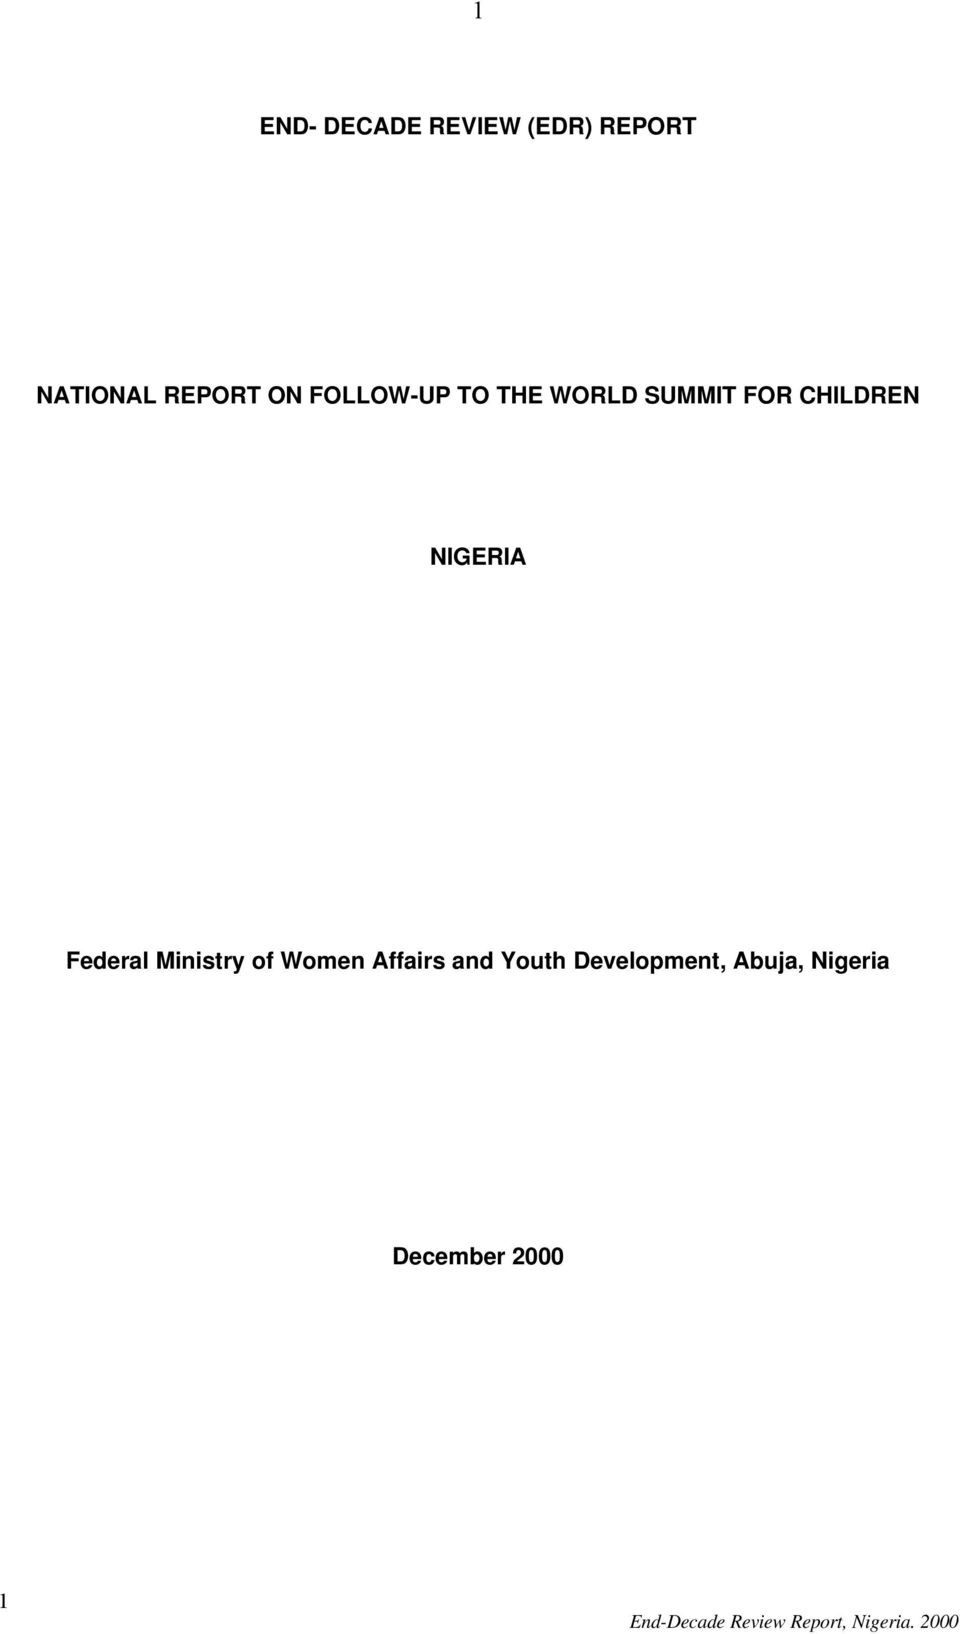 Federal Ministry of Women Affairs and Youth Development,